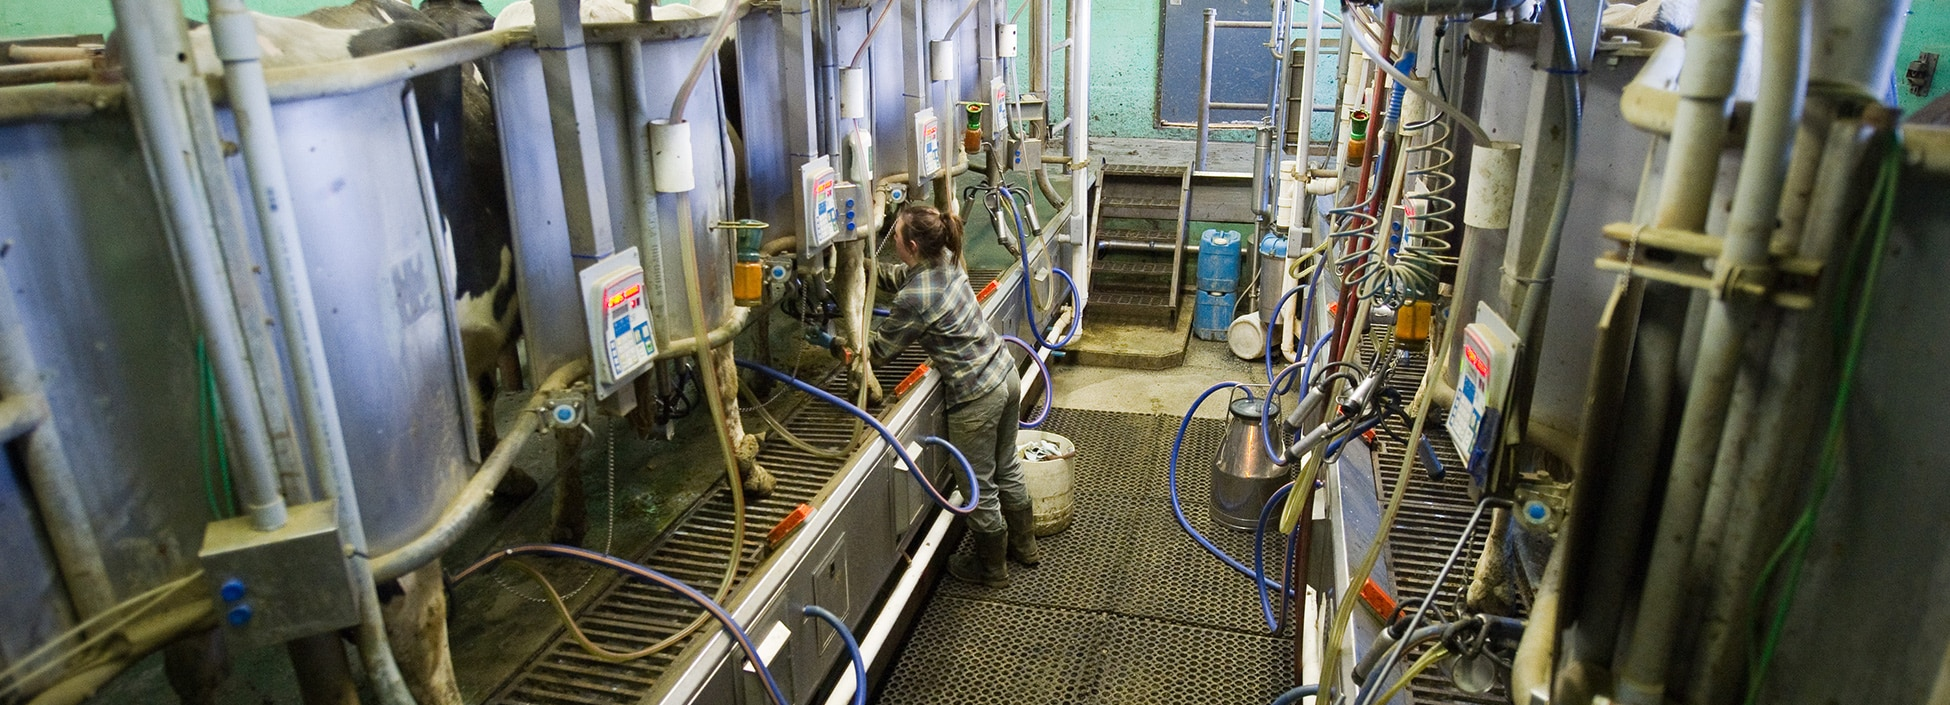 Vermont Tech dairy program milking equipment, VTC farm, agriculture, student workers, hands on